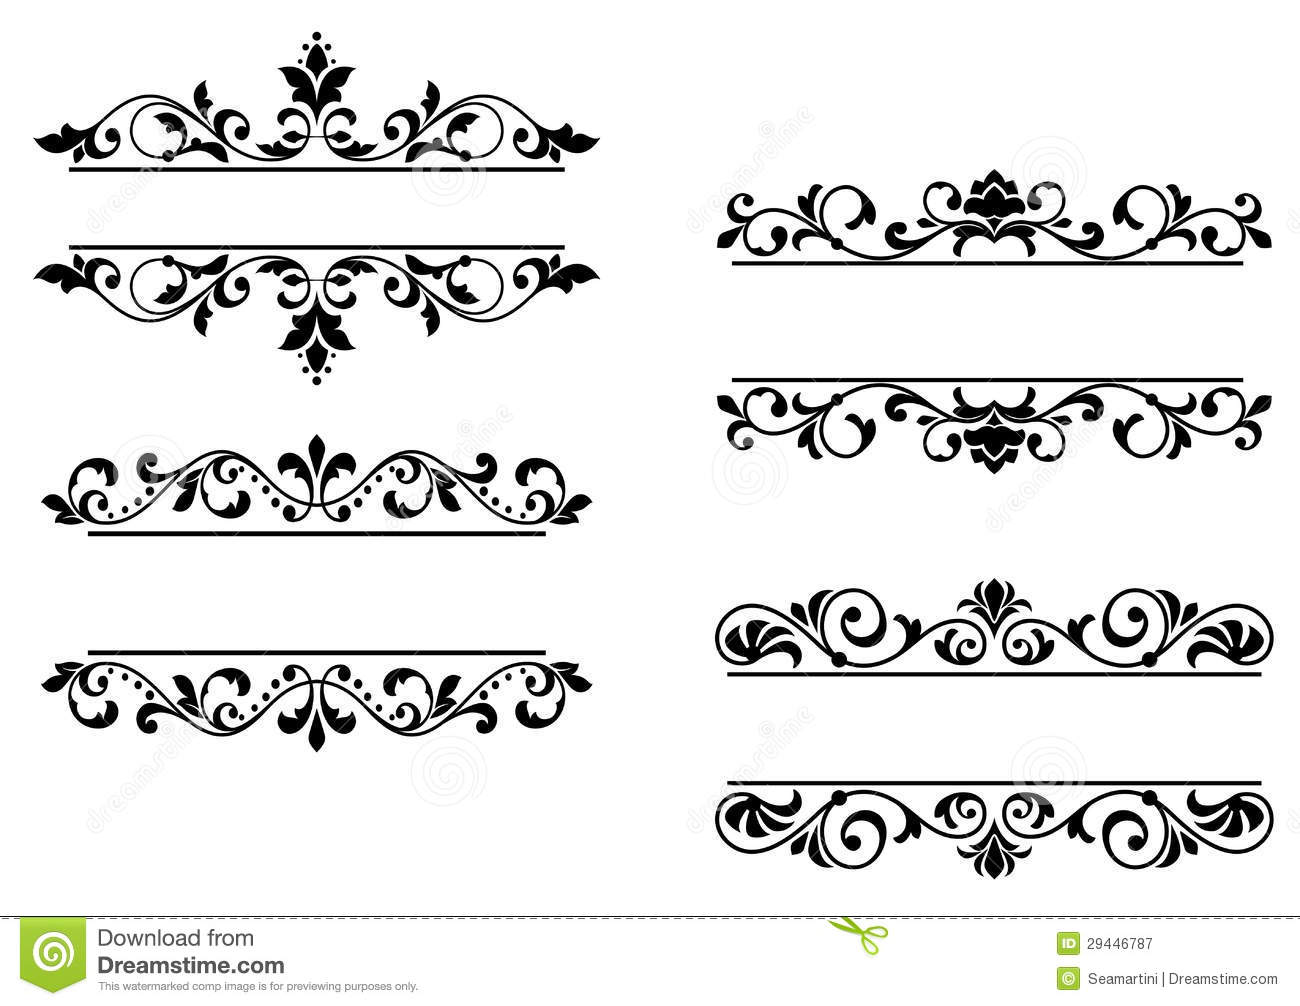 Free Heading Line Cliparts, Download Free Clip Art, Free Clip Art on.